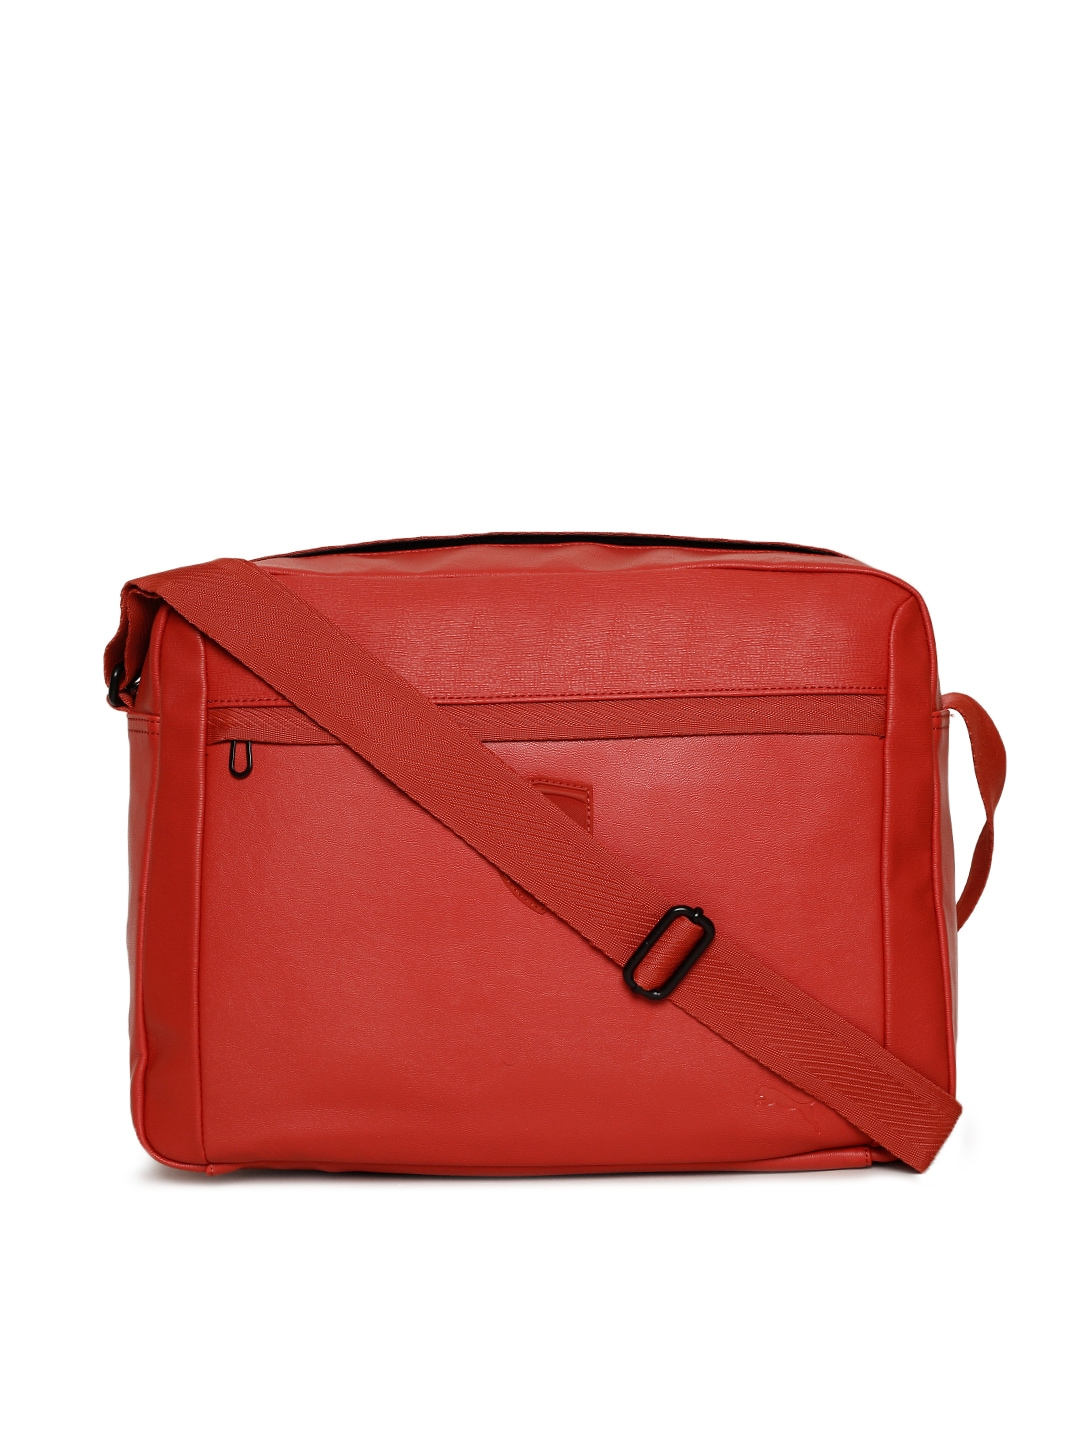 61cc7d4654 Puma Ferrari Ls Bags Handbags - Buy Puma Ferrari Ls Bags Handbags online in  India